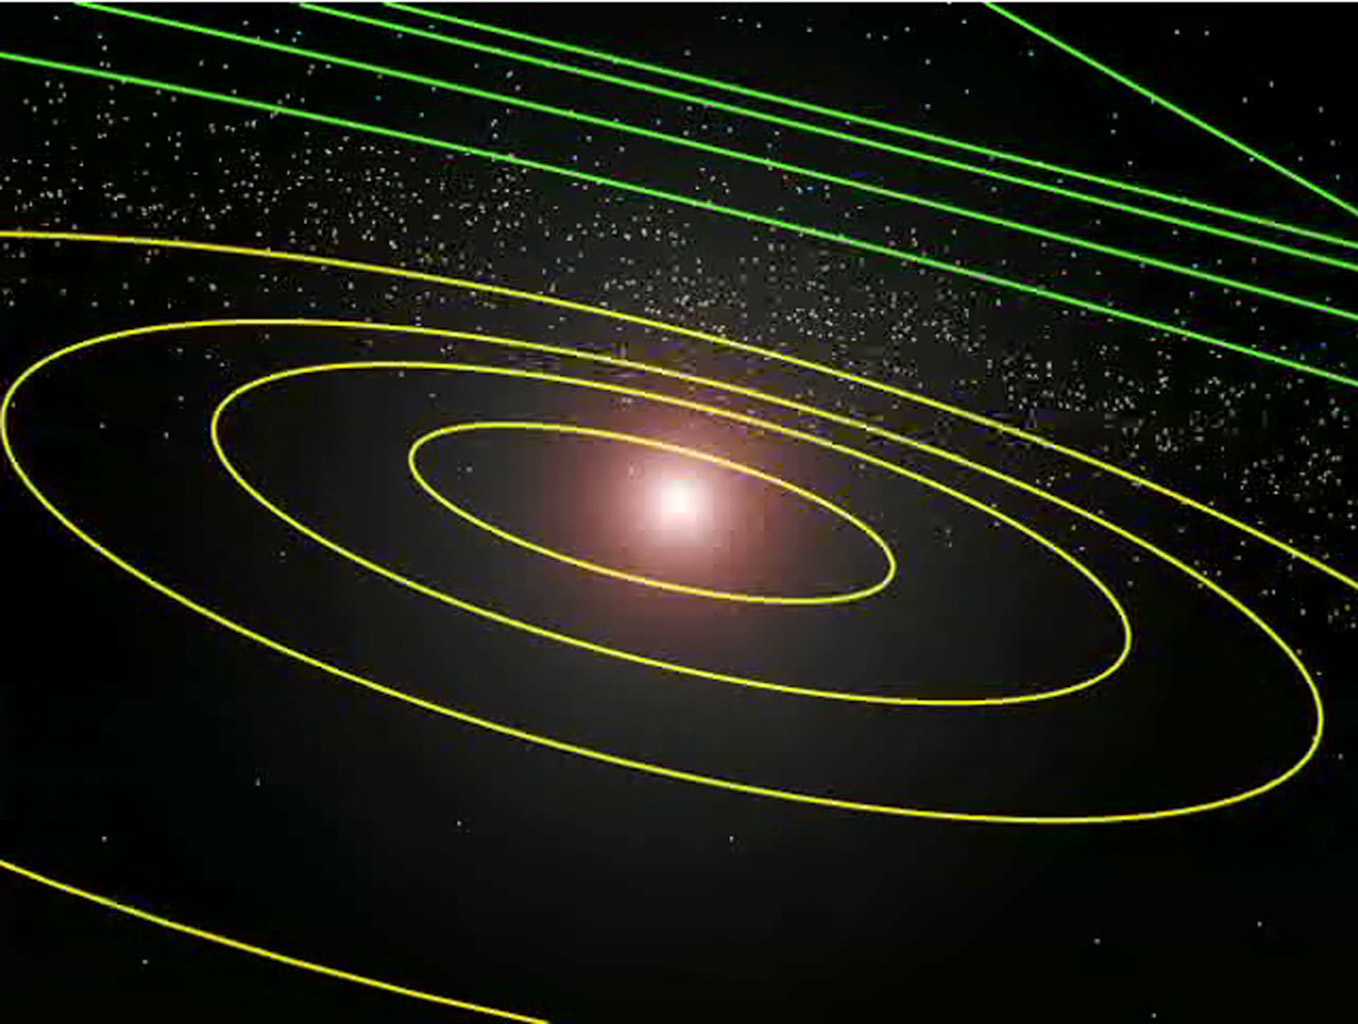 This image shows the location of the newly discovered planet-like object, dubbed 'Sedna,' in relation to the rest of the solar system in 2004.